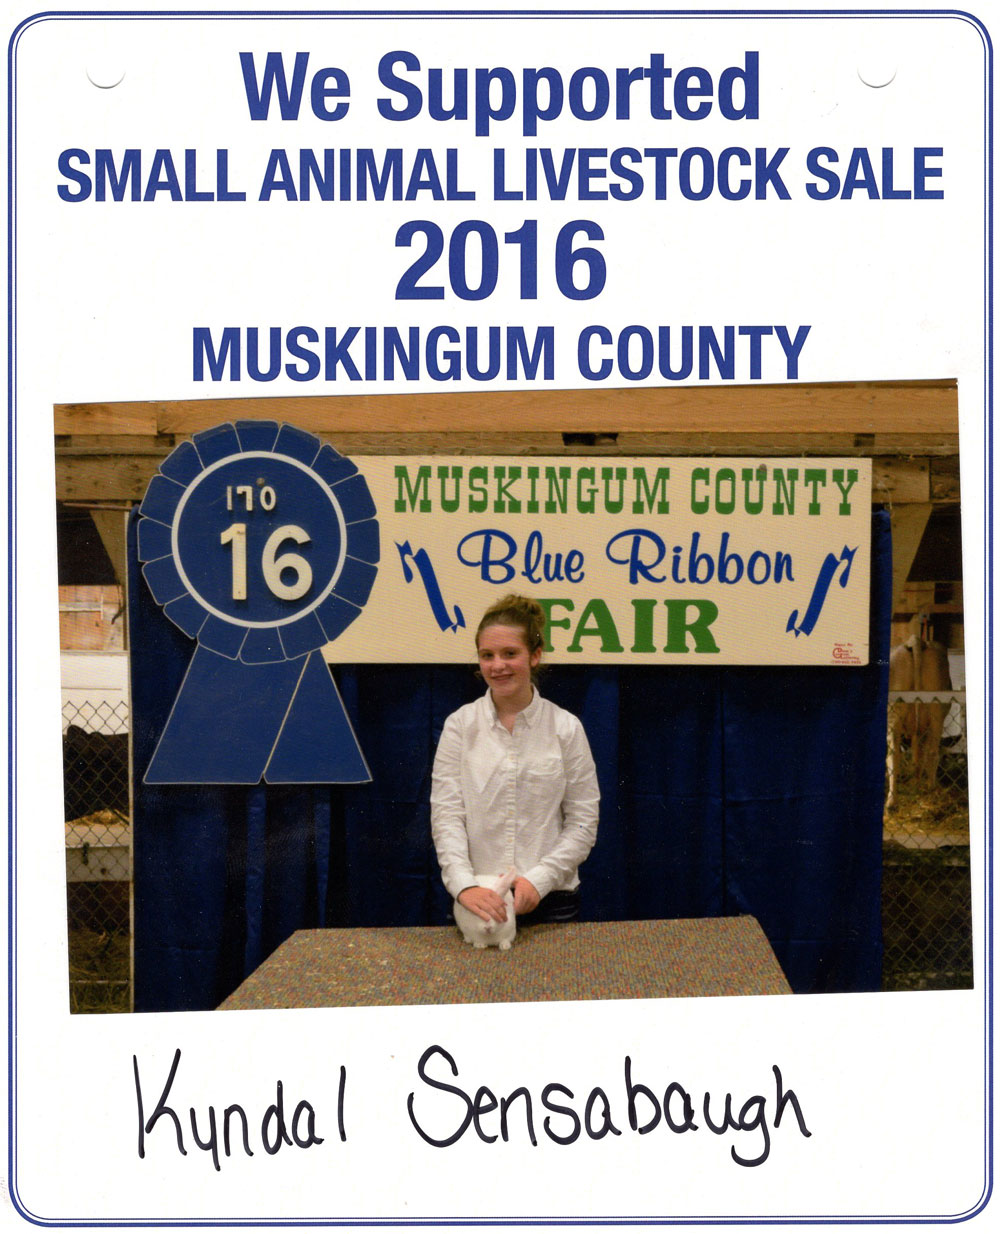 Zemba Bros Community Support Muskingum County Fair Live Stock Auction 5